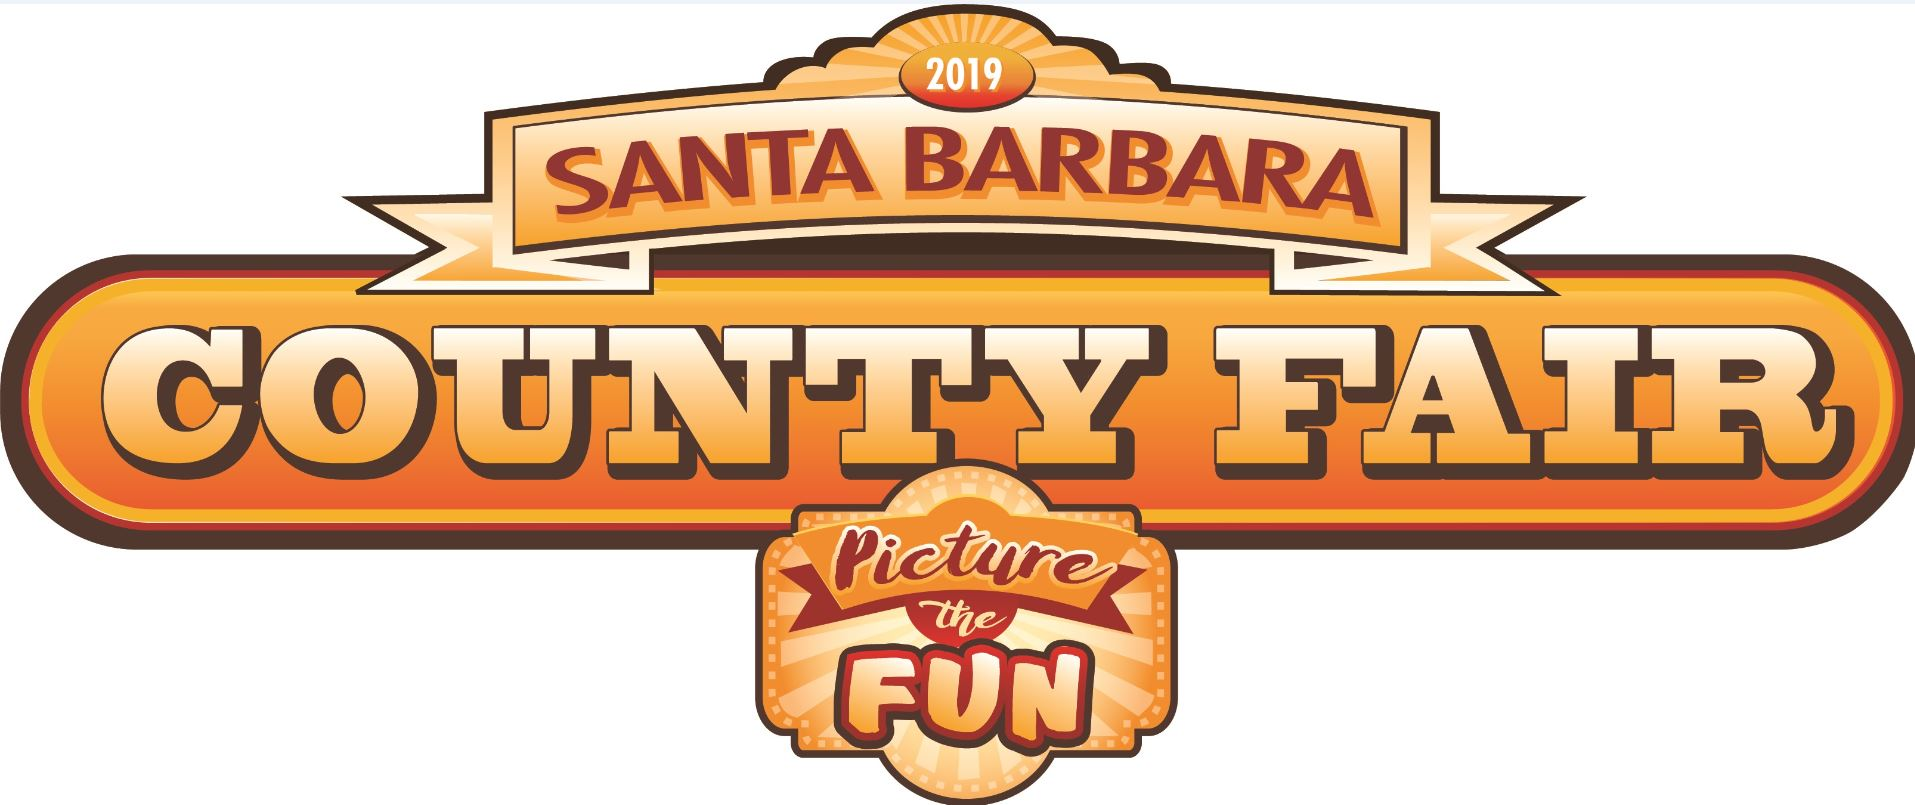 2019 Santa Barbara County Fair - Admission Ticket